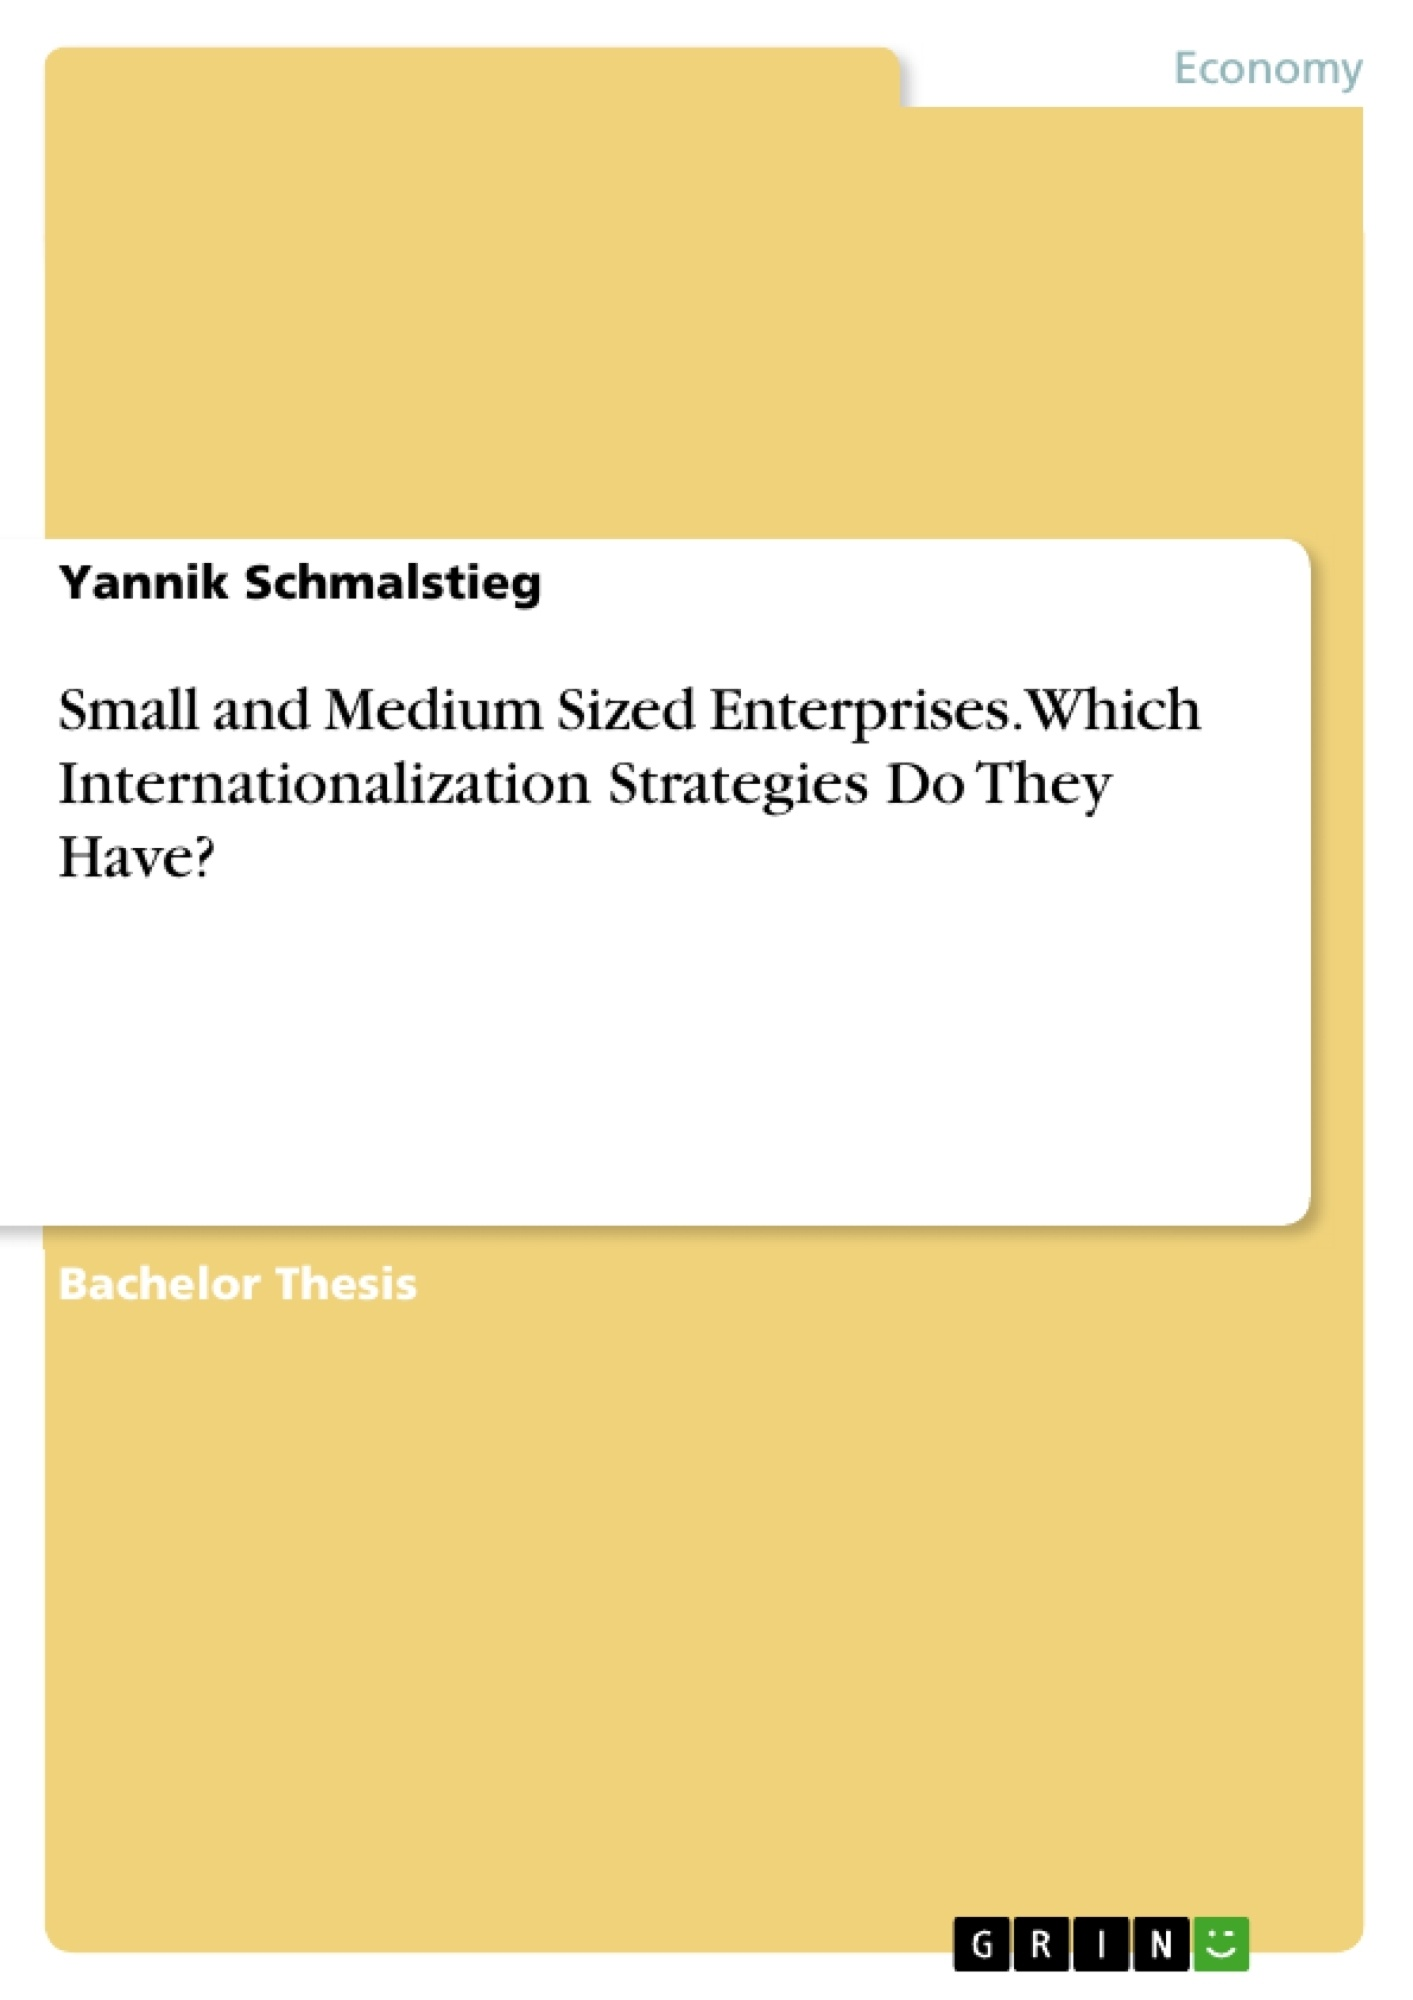 Title: Small and Medium Sized Enterprises. Which Internationalization Strategies Do They Have?